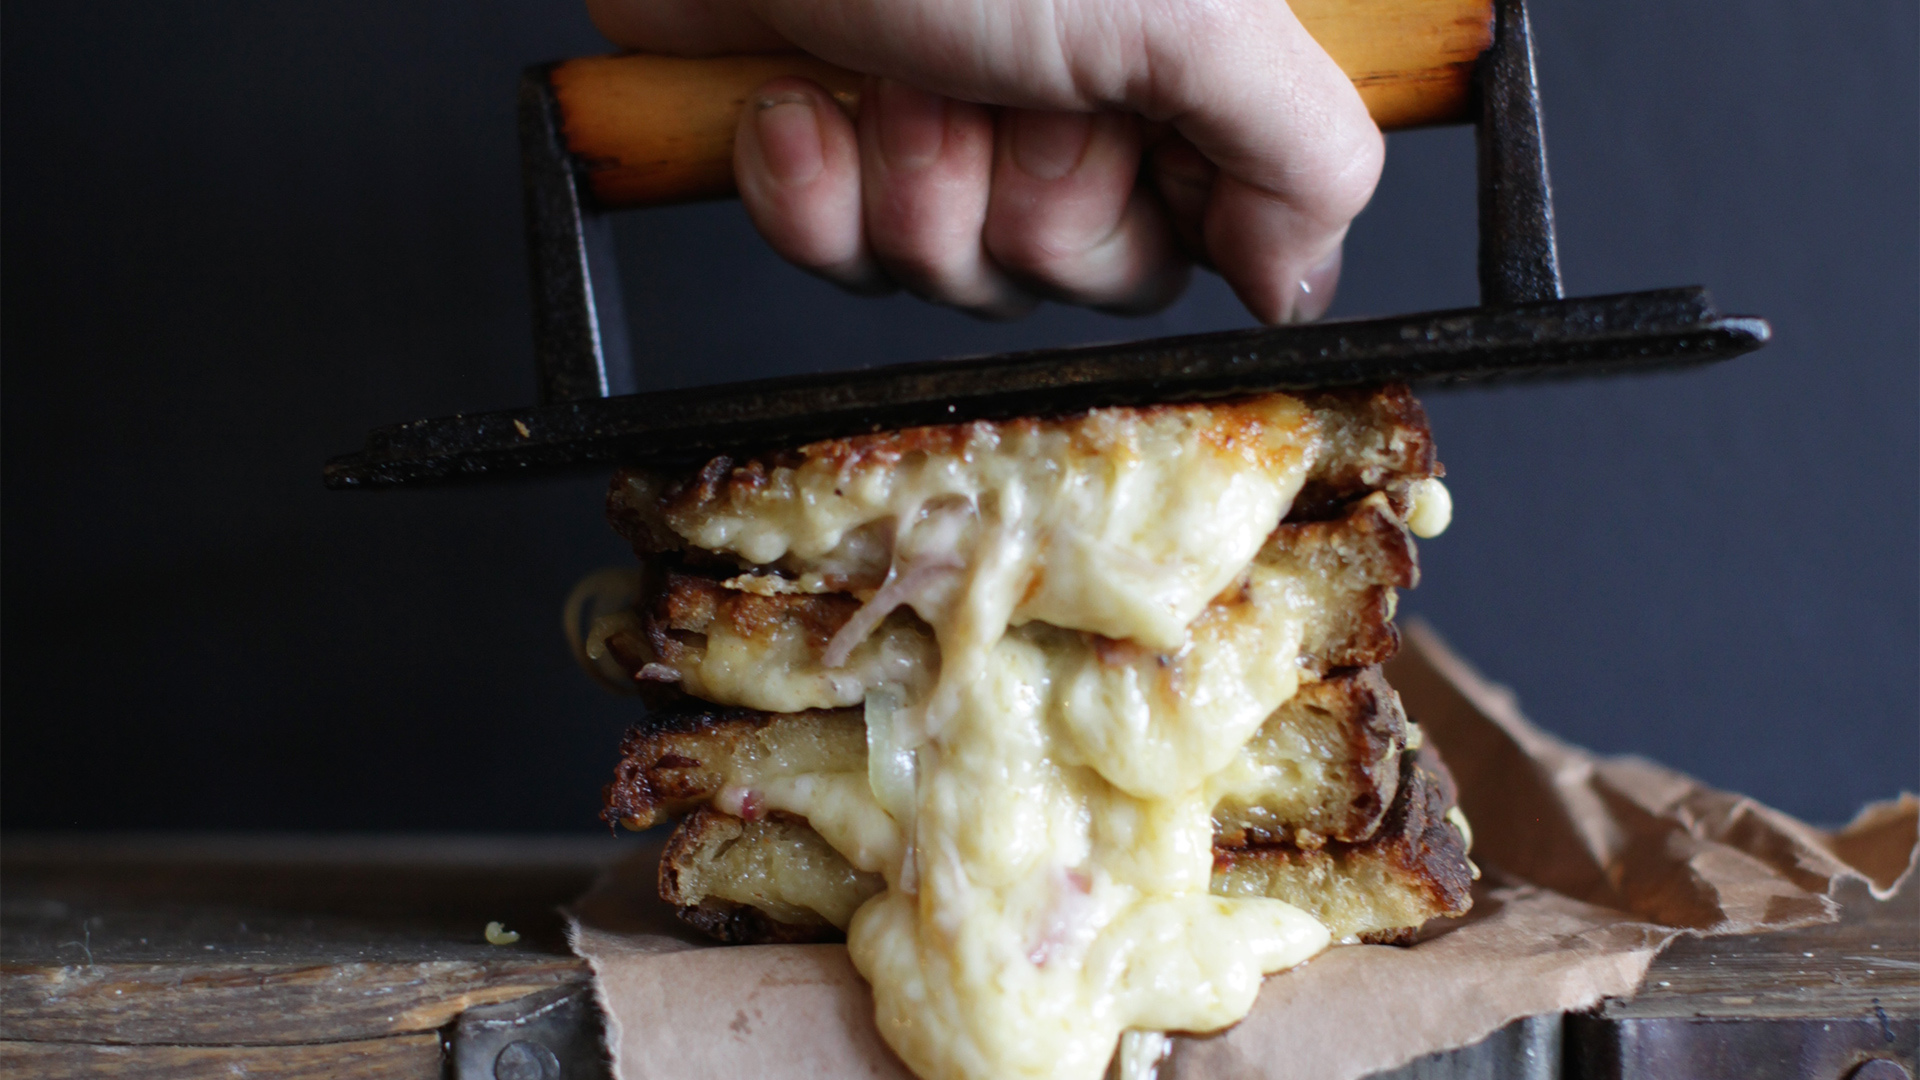 A toasted sandwich with cheese oozing out is squashed by The Cheese Truck's chef holding an iron press. Image courtesy of The Cheese Truck.